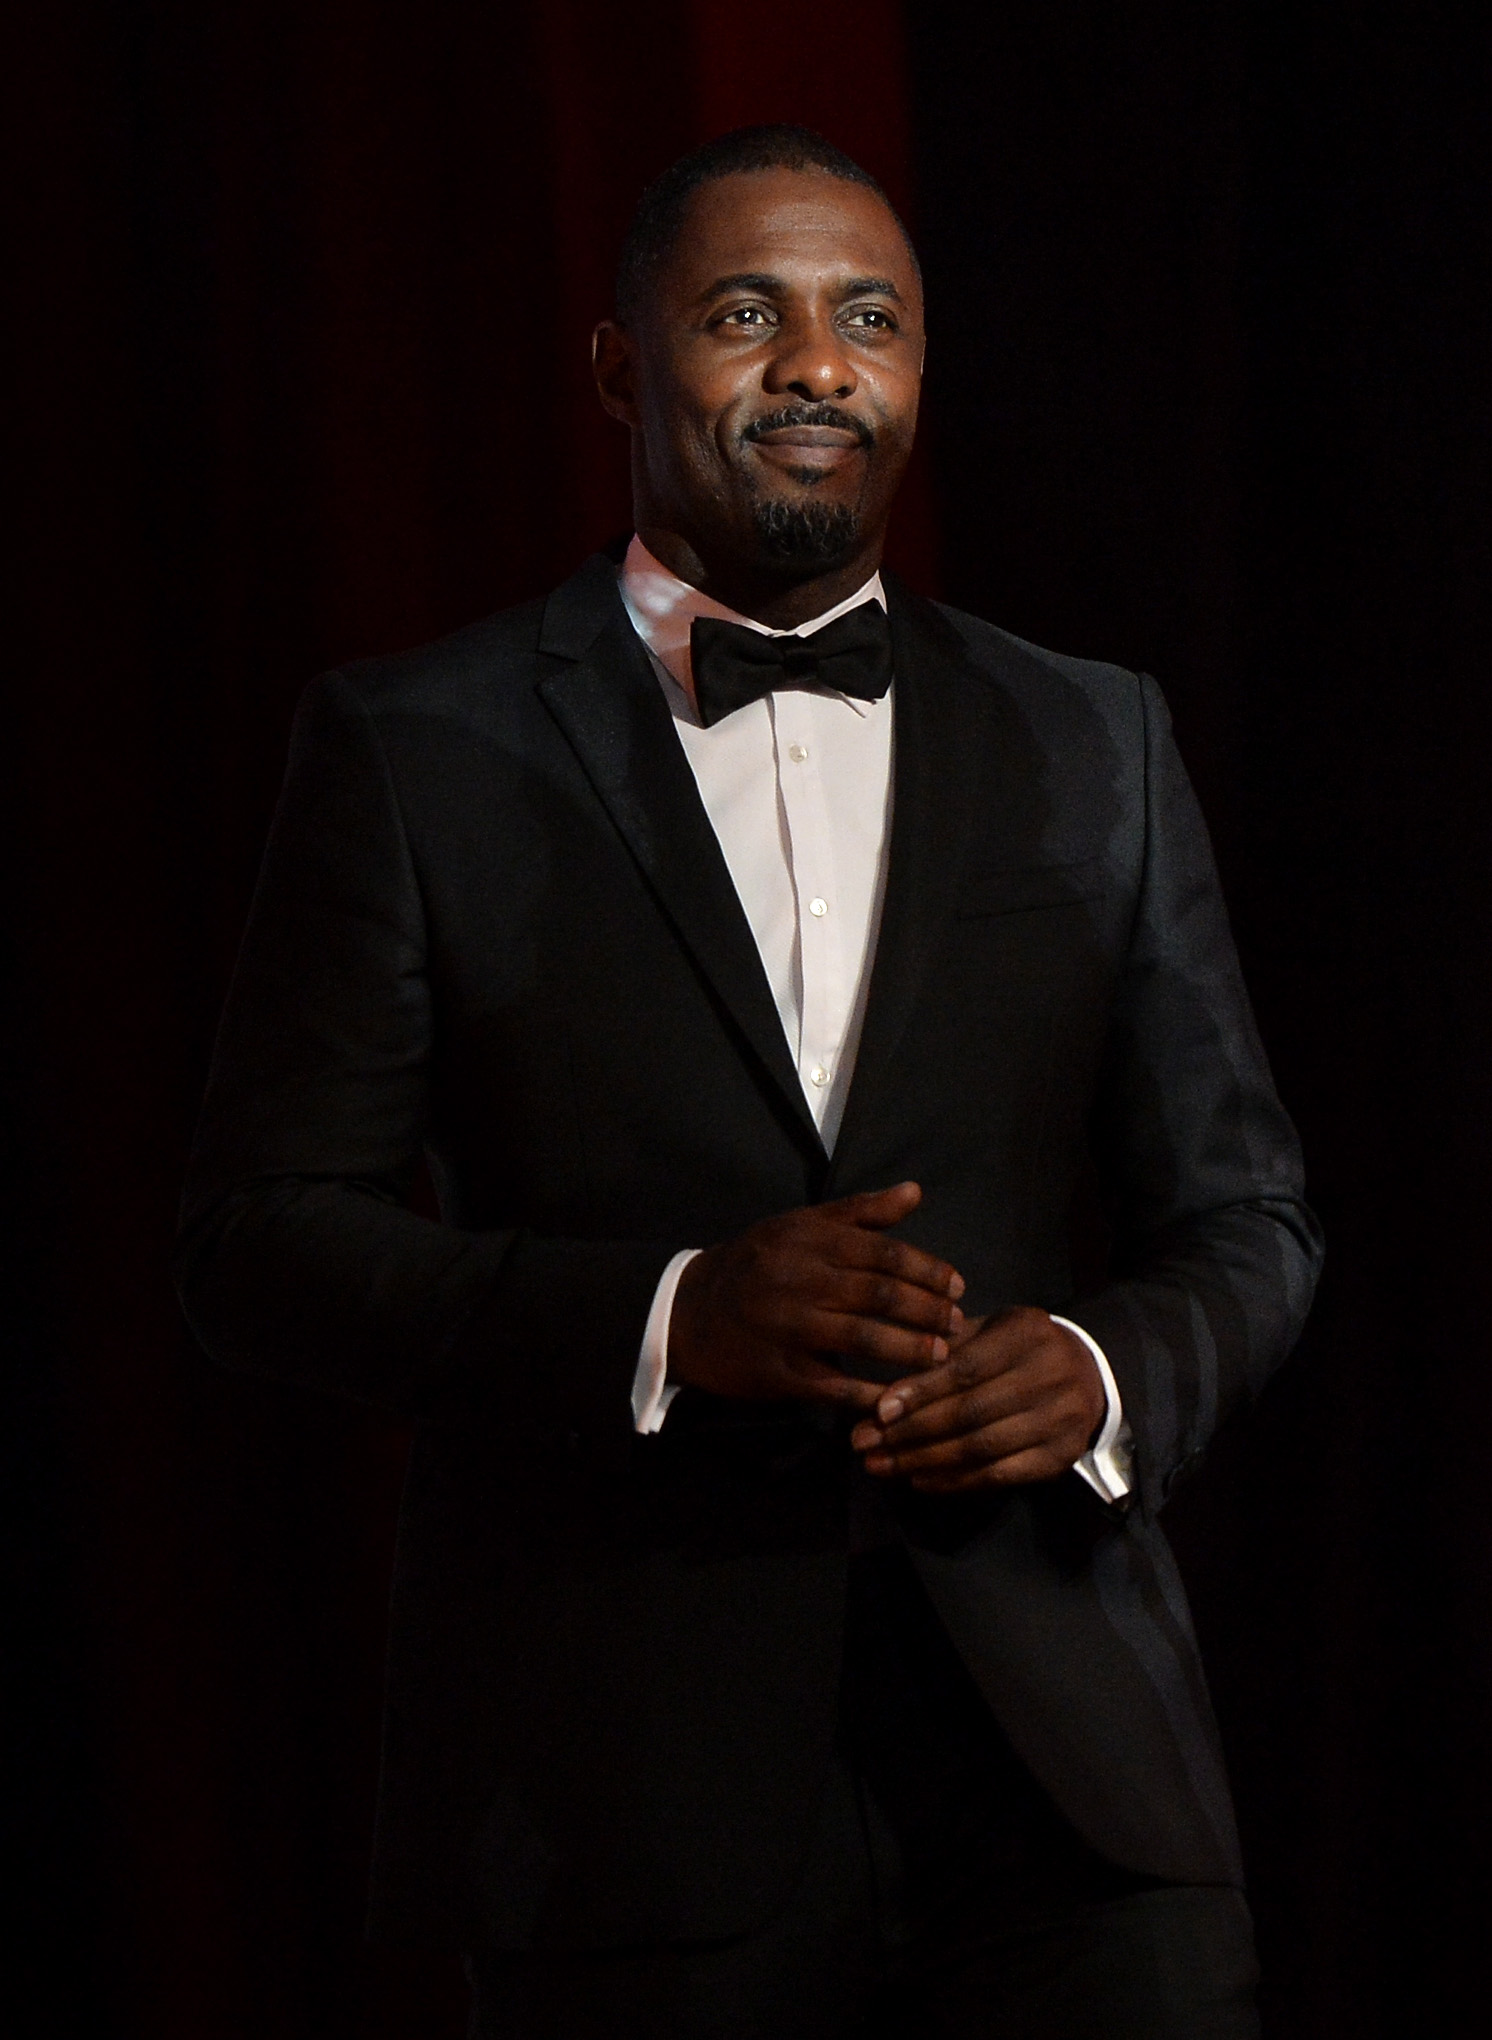 Idris Elba honored U2, who wrote an original song for his film Mandela: Long Walk to Freedom.